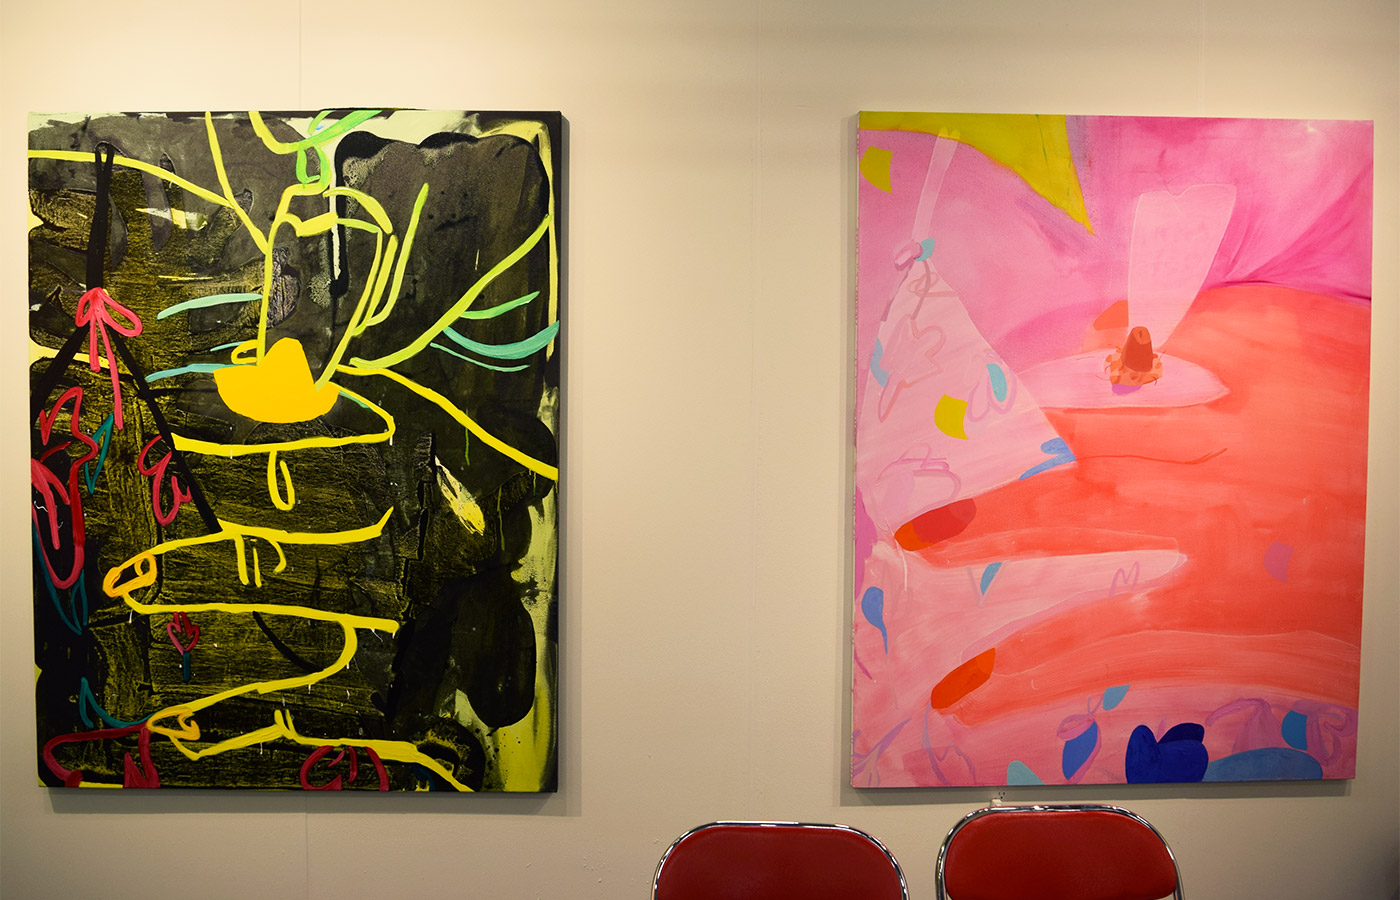 Paintings by Sarah Faux in Stems Gallery's booth